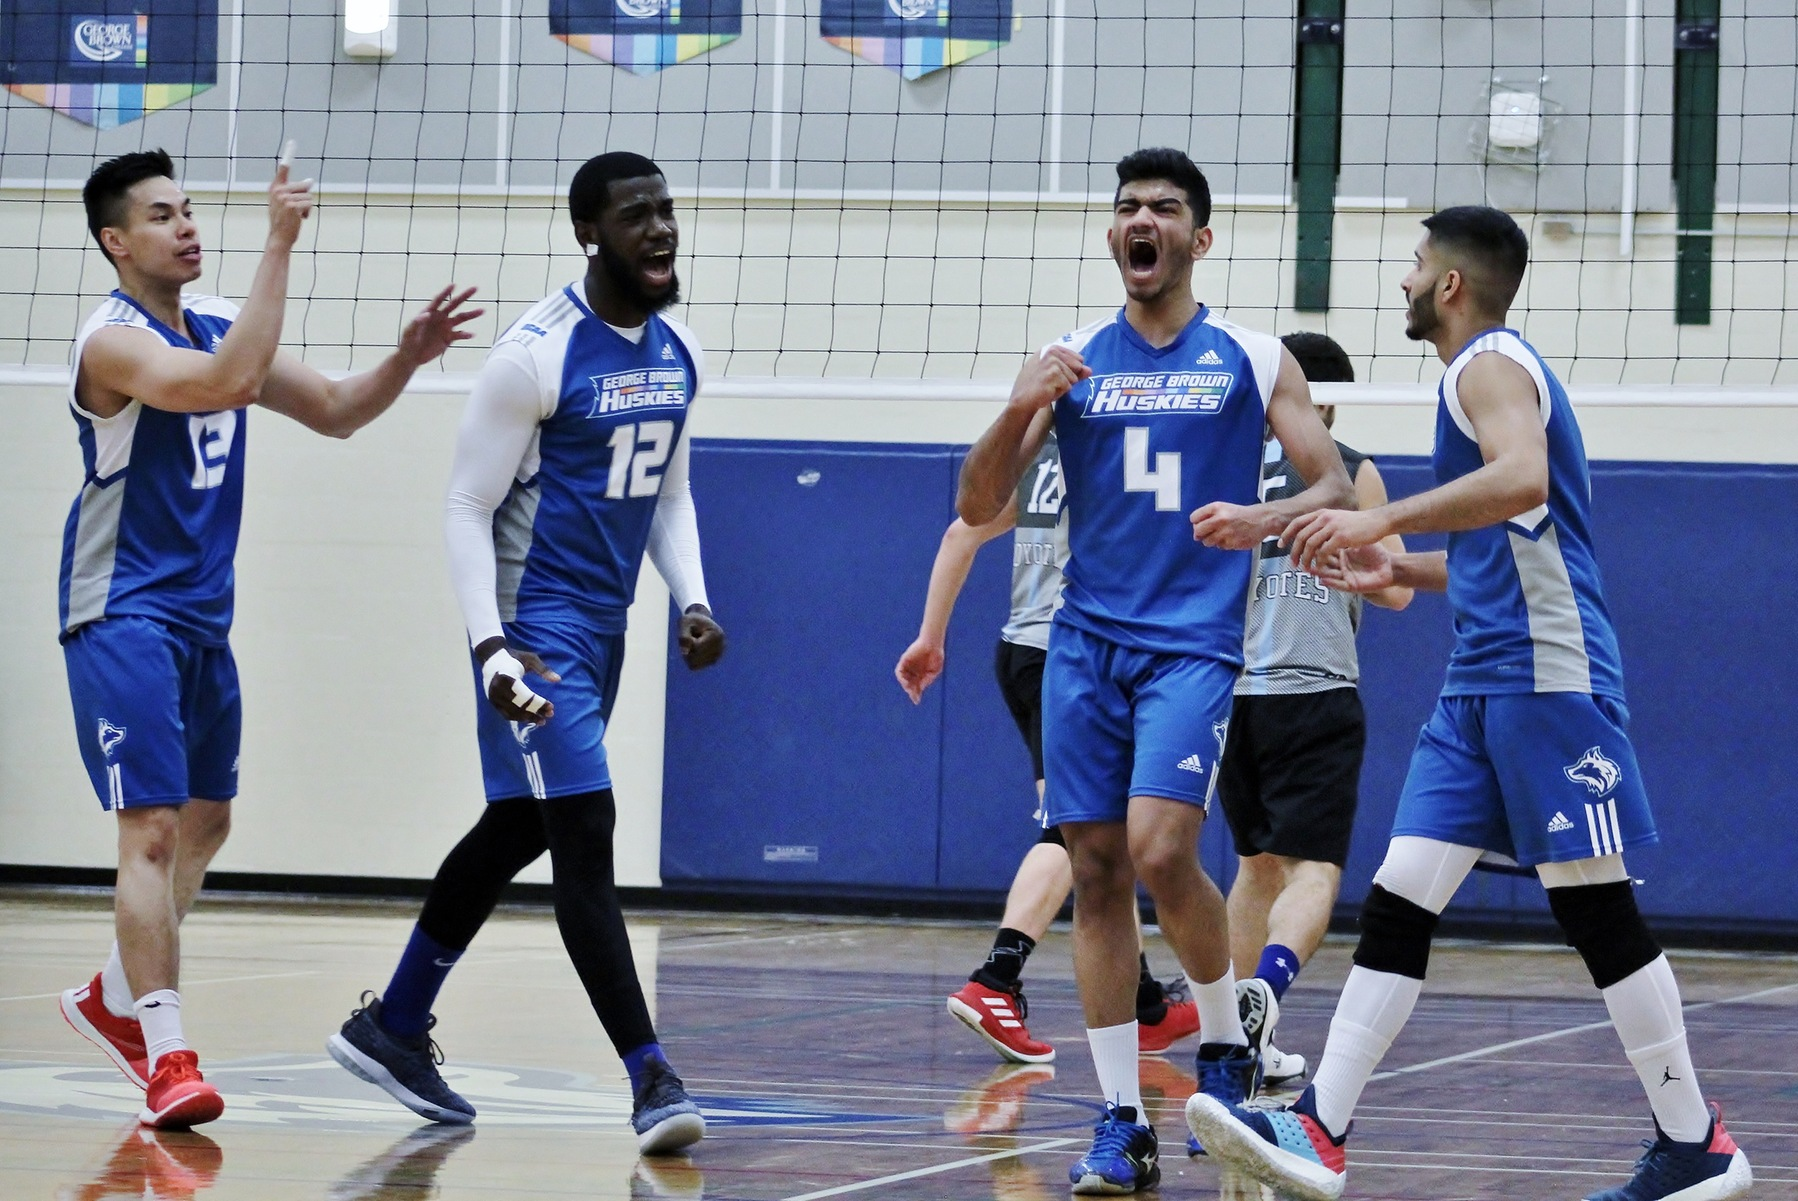 HUSKIES STAR VIVEK MATHIMAKKI NAMED 2ND TEAM OCAA VOLLEYBALL ALL-STAR